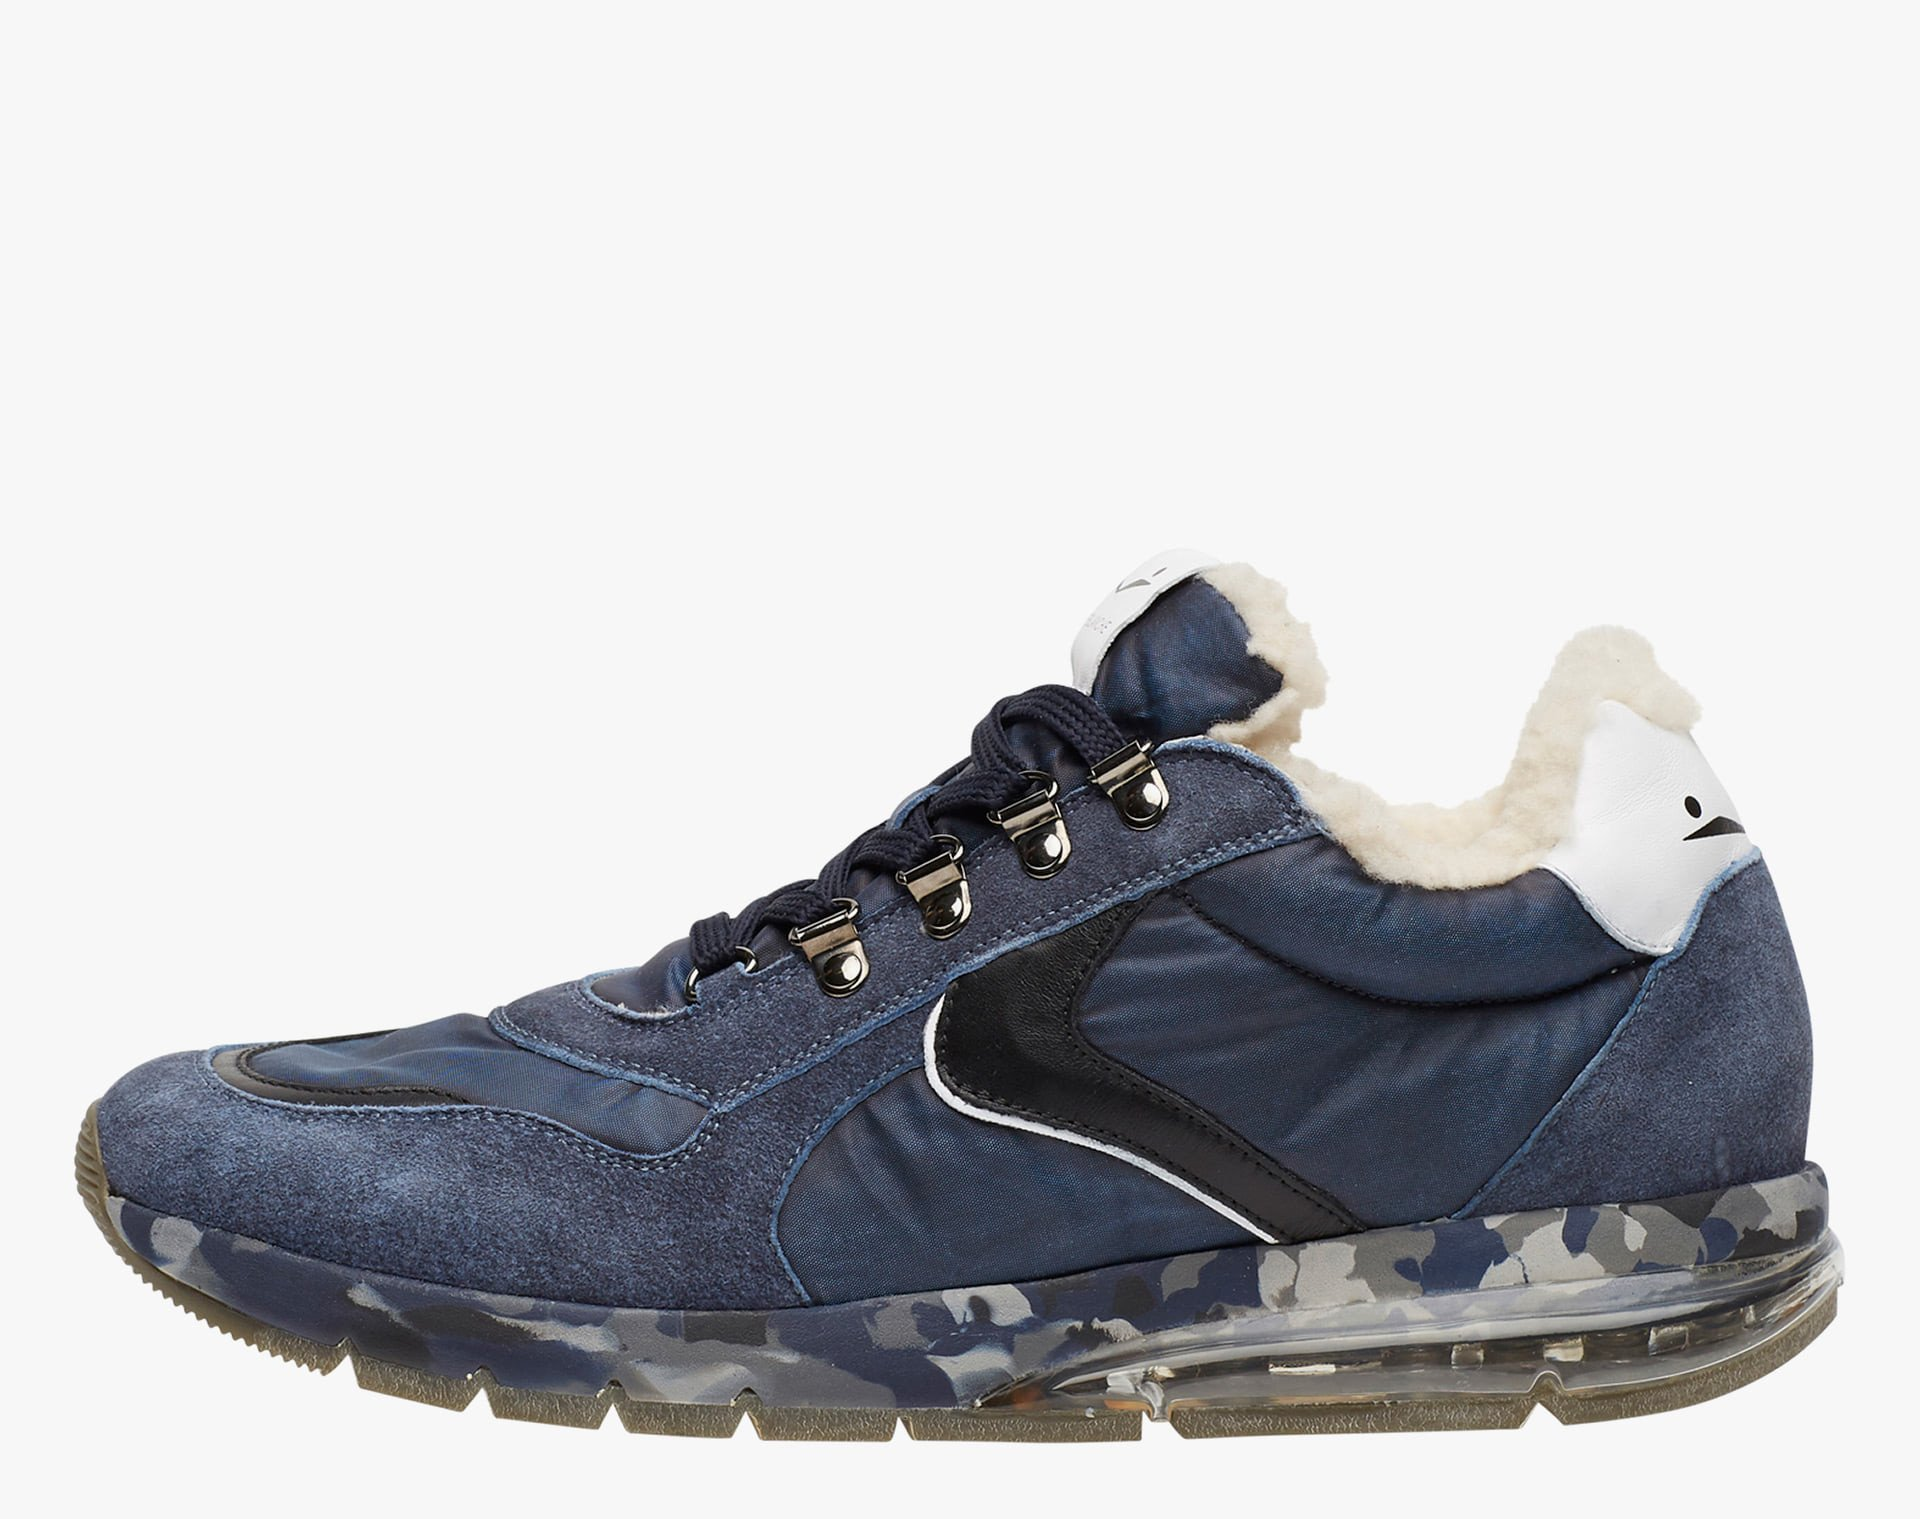 NEW LENNY HOOK FUR - Sneakers in leather and nylon - Blue-Black